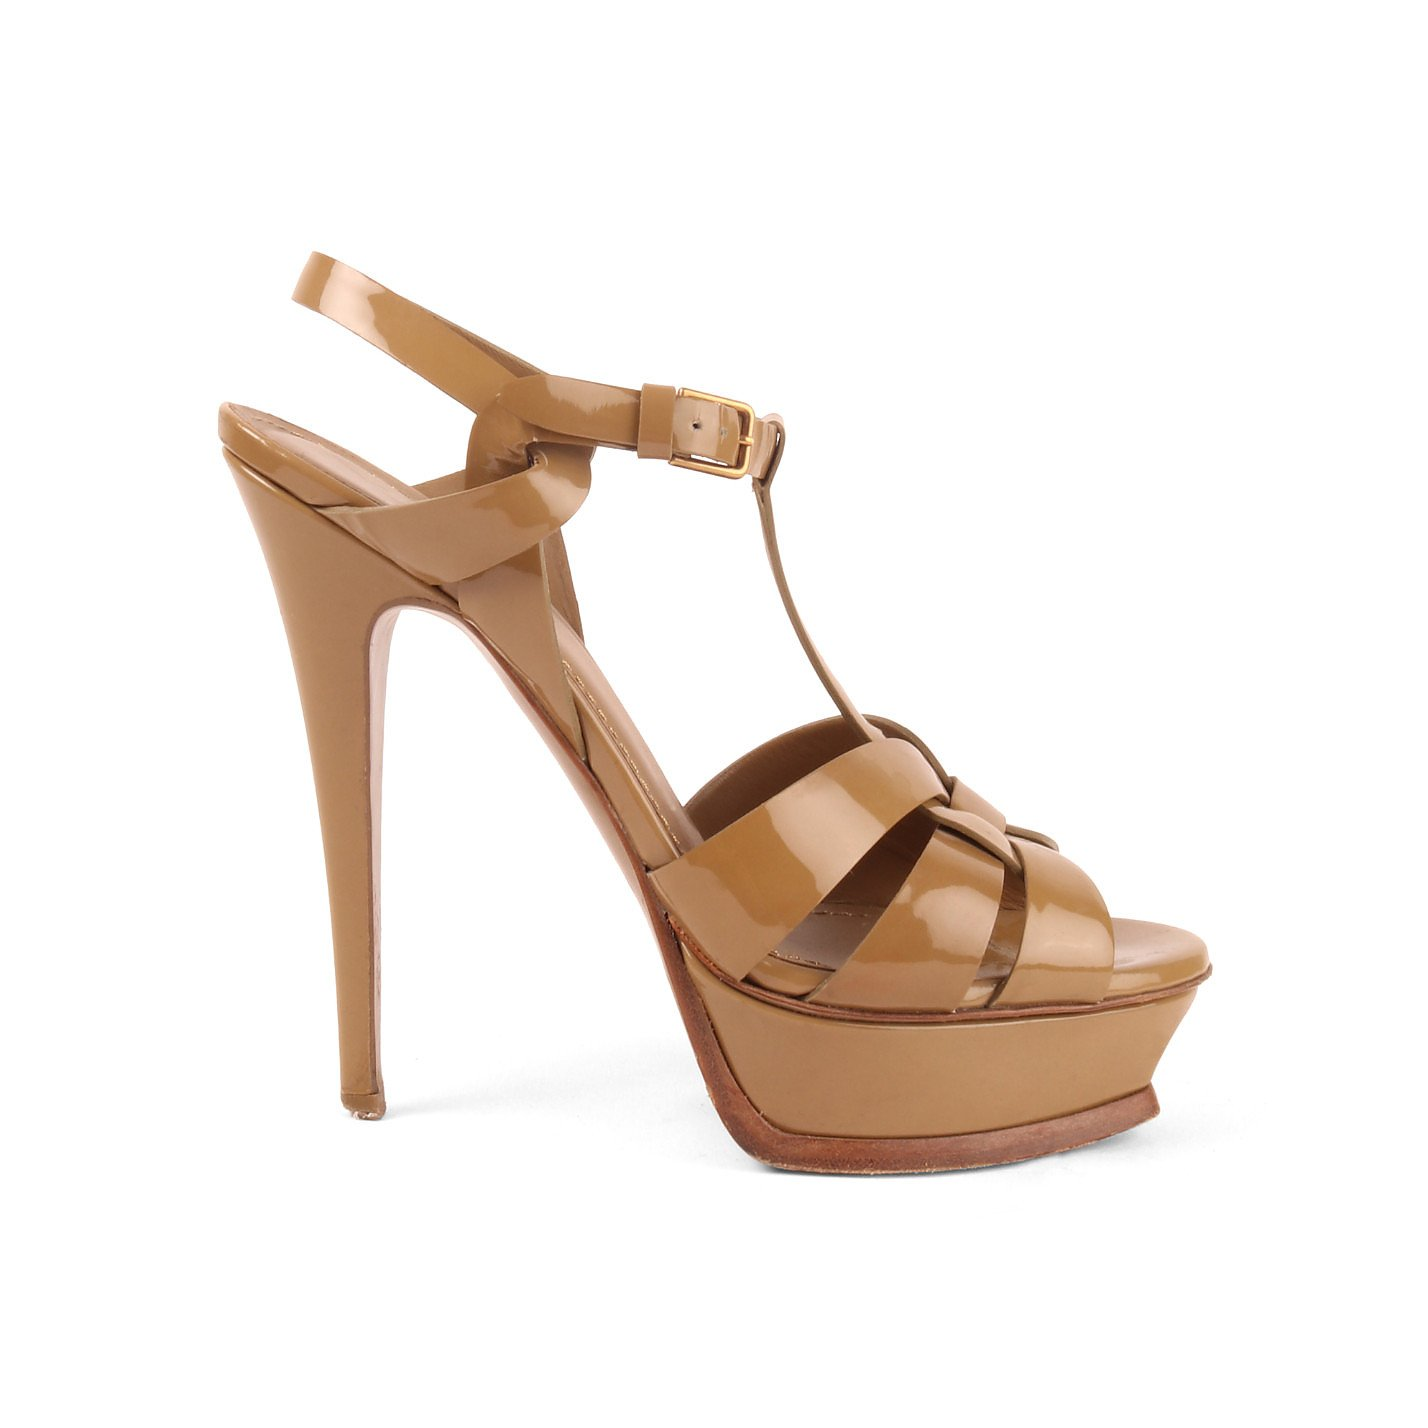 Yves Saint Laurent Tribute Sandal In Patent Leather